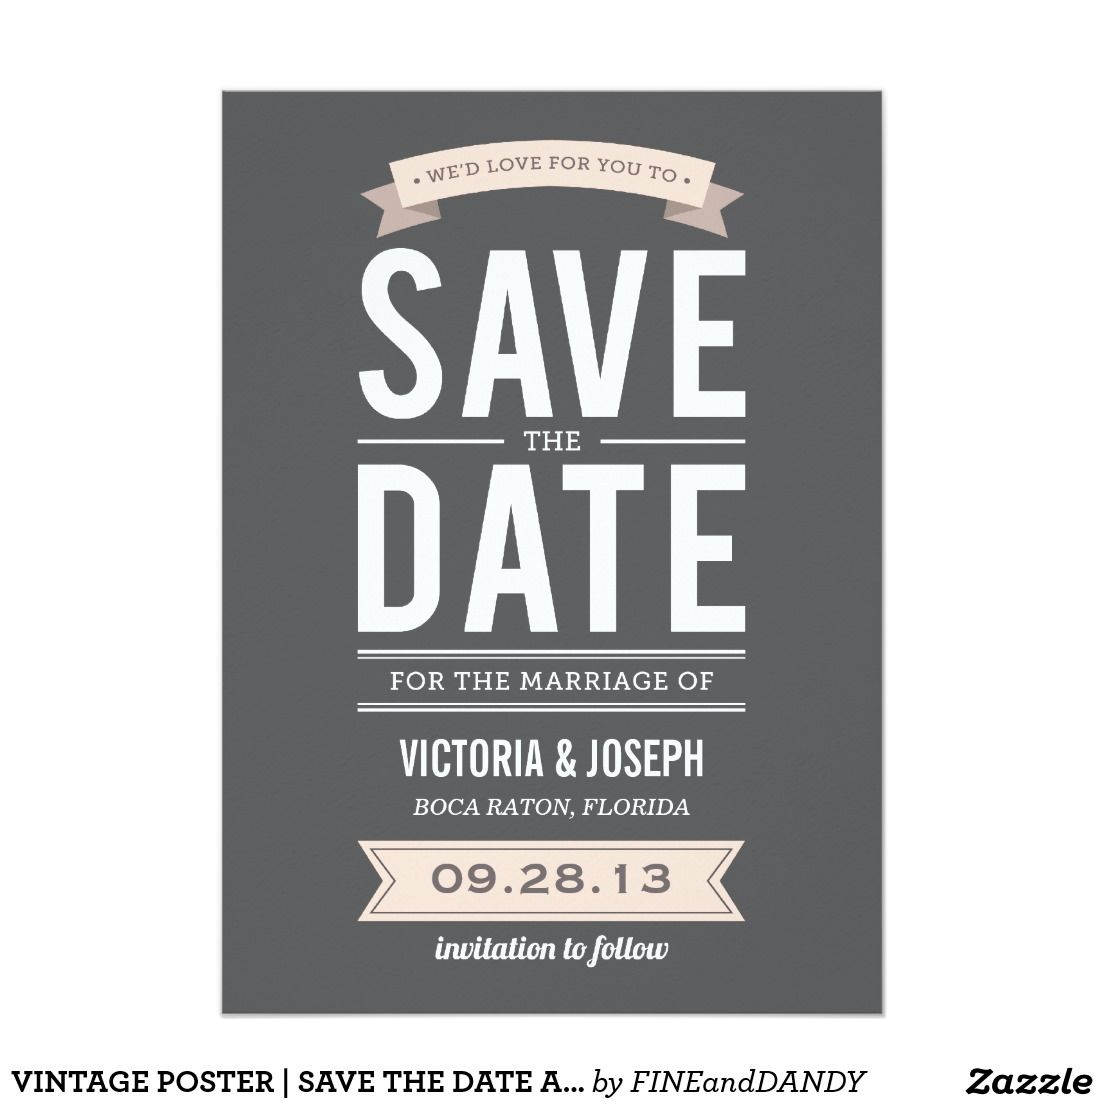 Vintage Poster Save The Date Announcement Zazzle Com In 2021 Save The Date Invitations Wedding Save The Dates Vintage Save The Dates Save the date flyer template